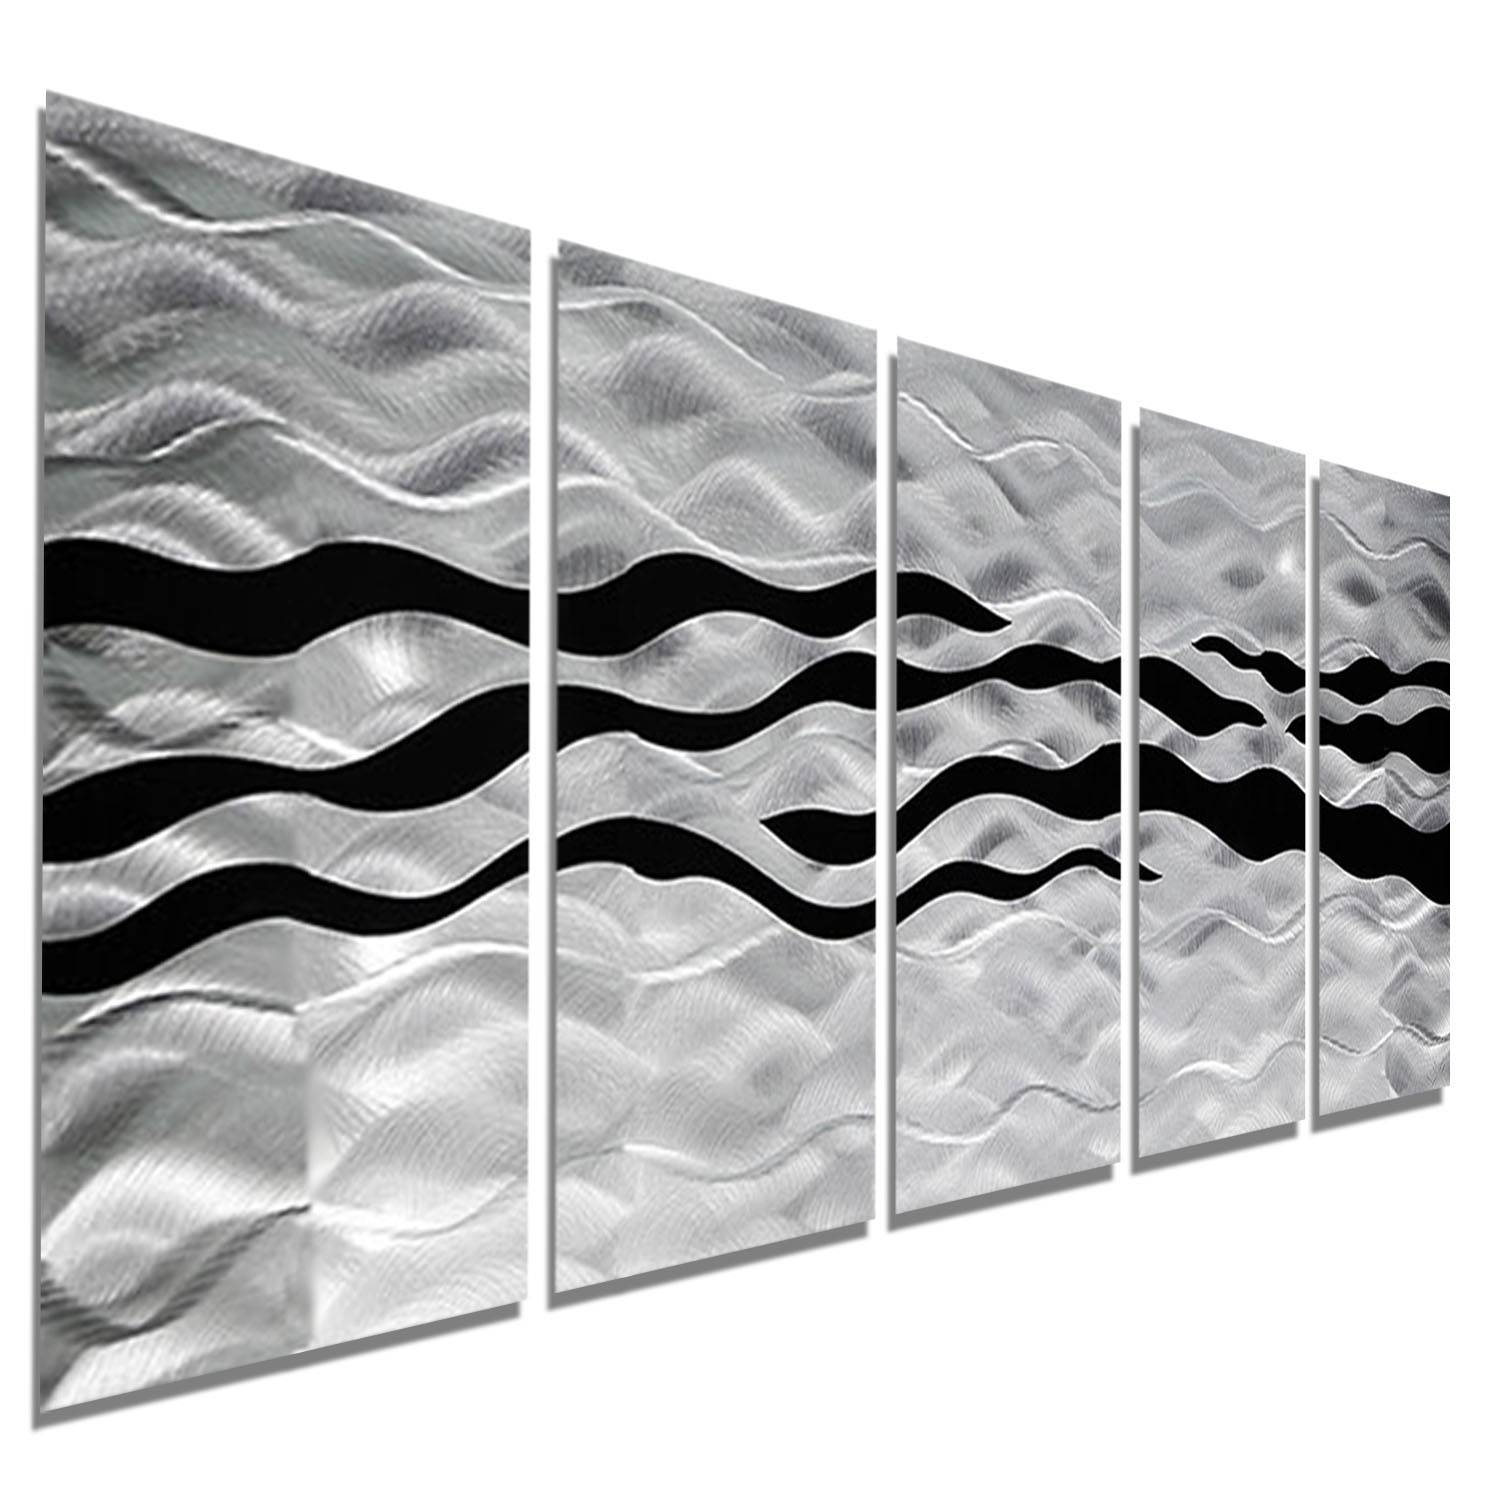 Onyx Oceana - Silver And Black Metal Wall Art - 5 Panel Wall Décor inside Current Black And Silver Metal Wall Art